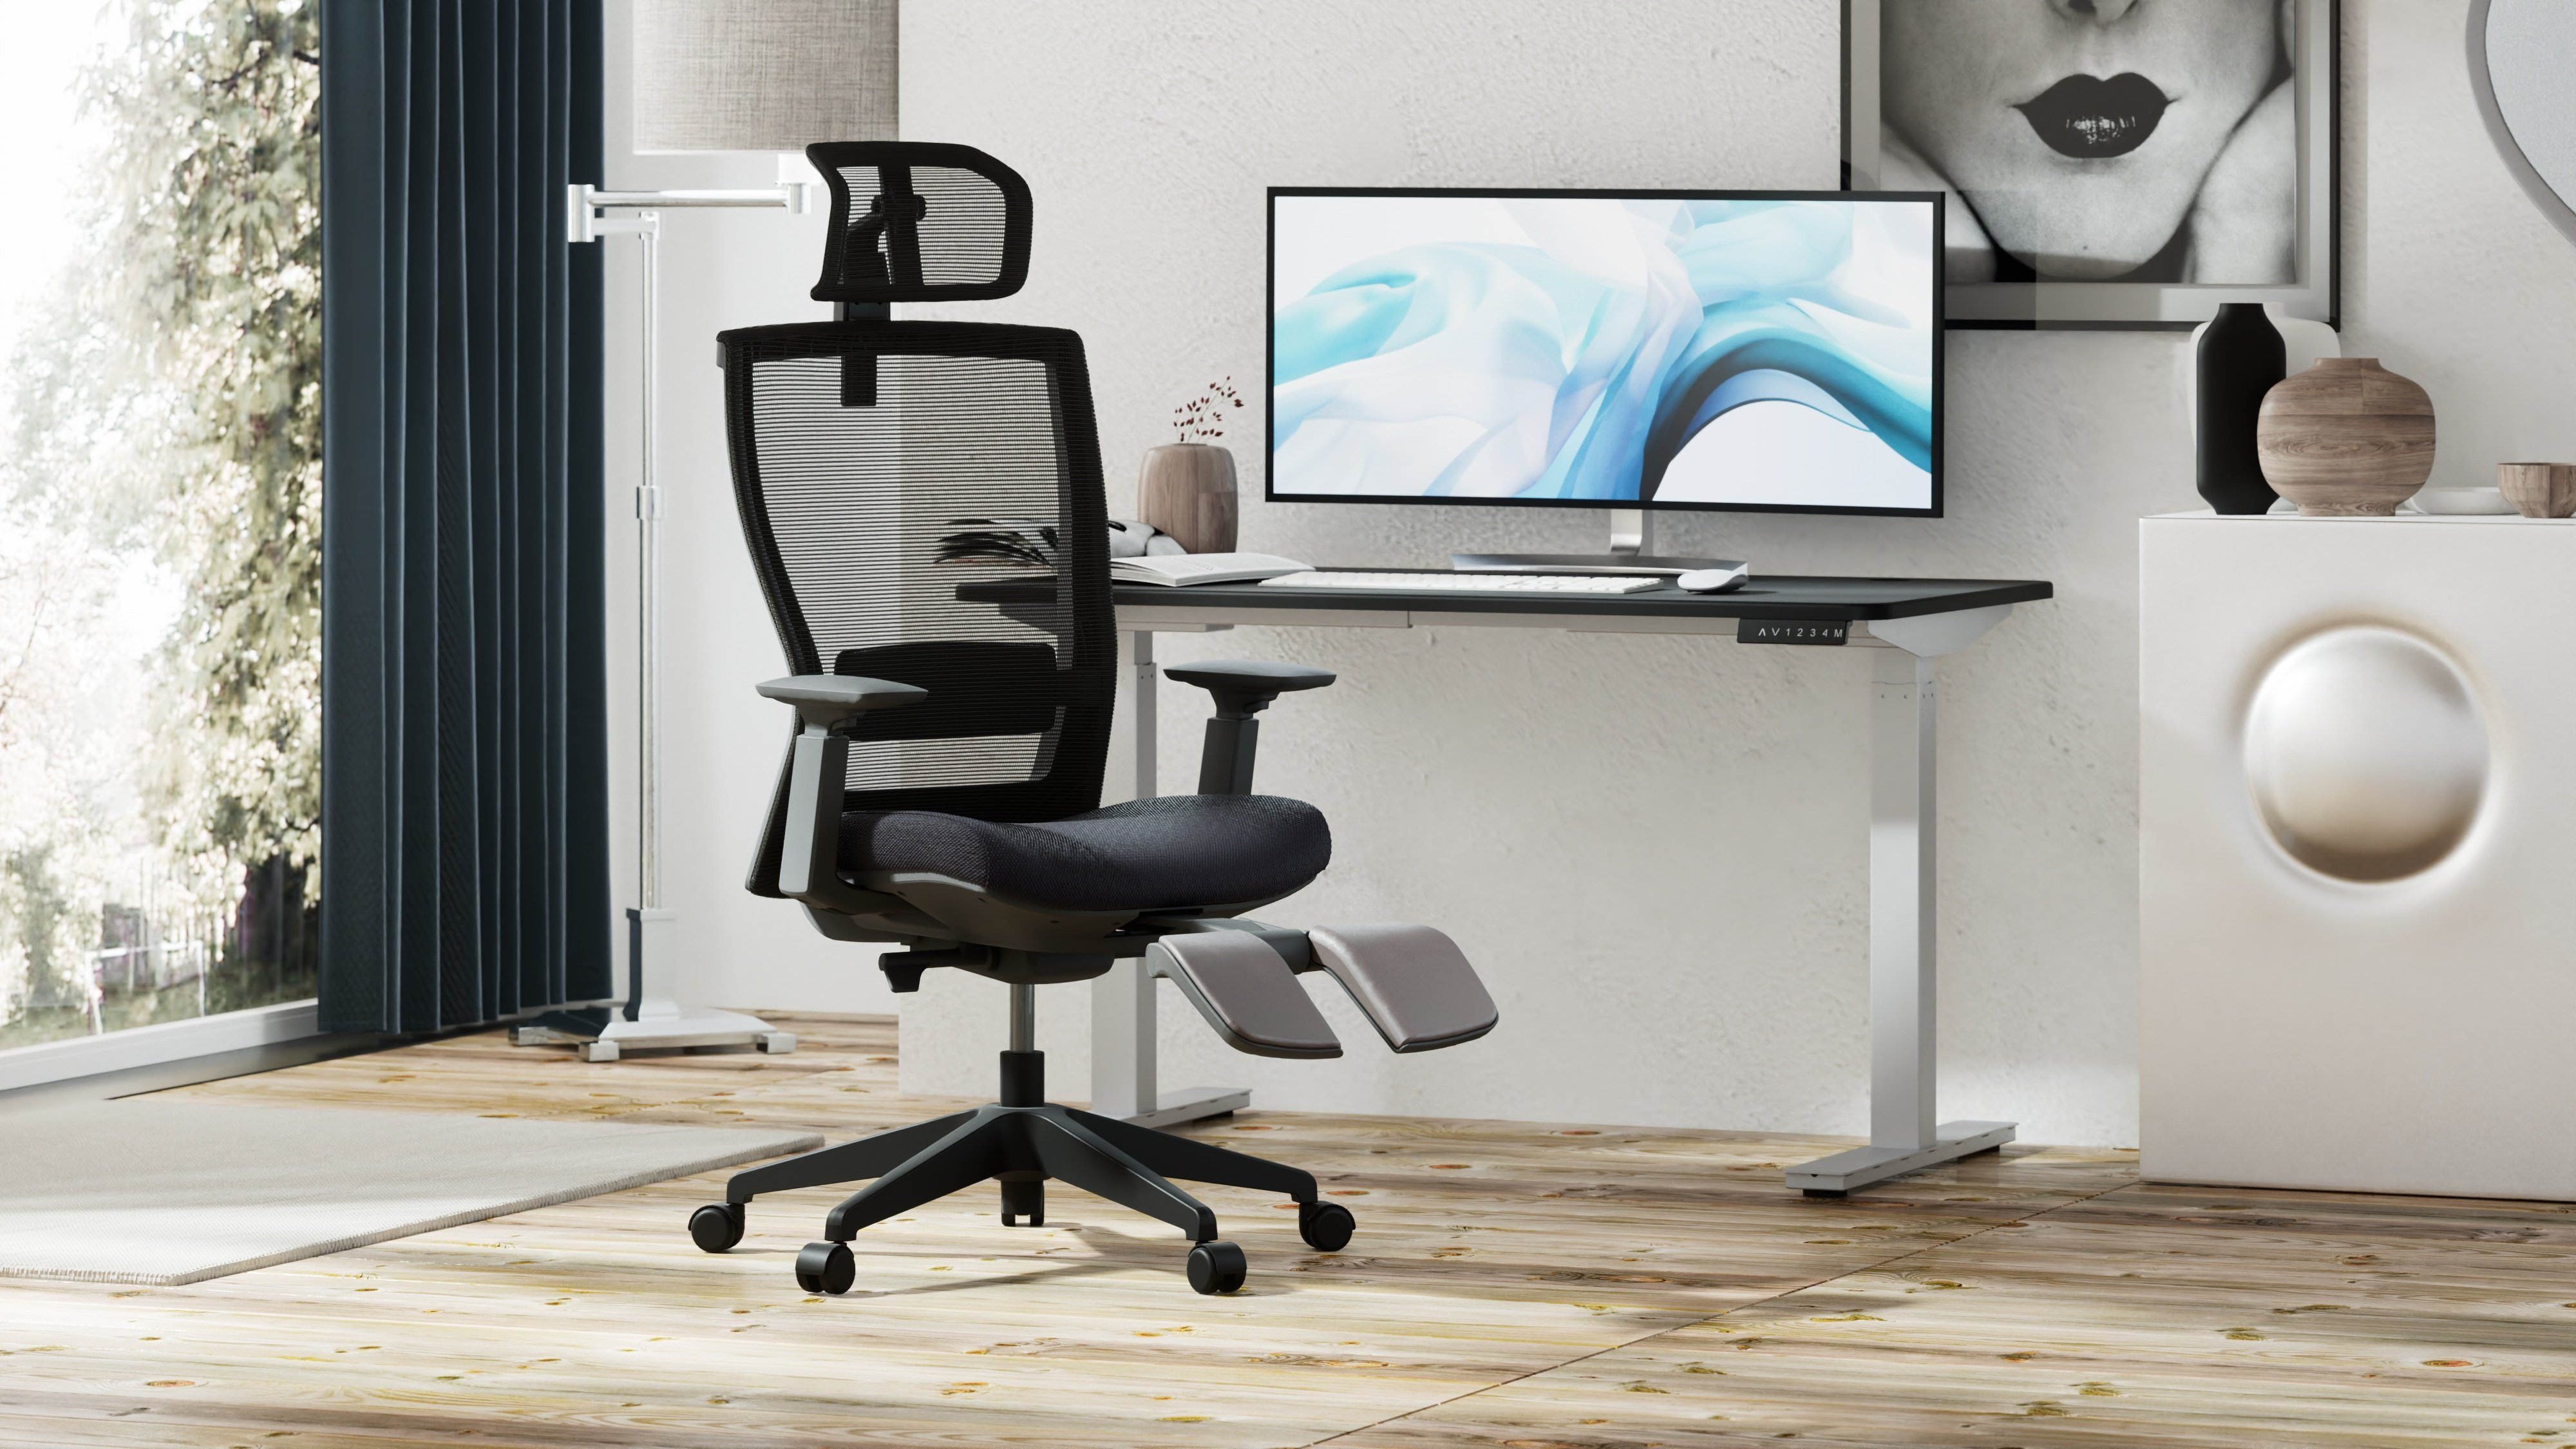 Ergonomic Chairs For Better Health And, Ergonomic Office Chair